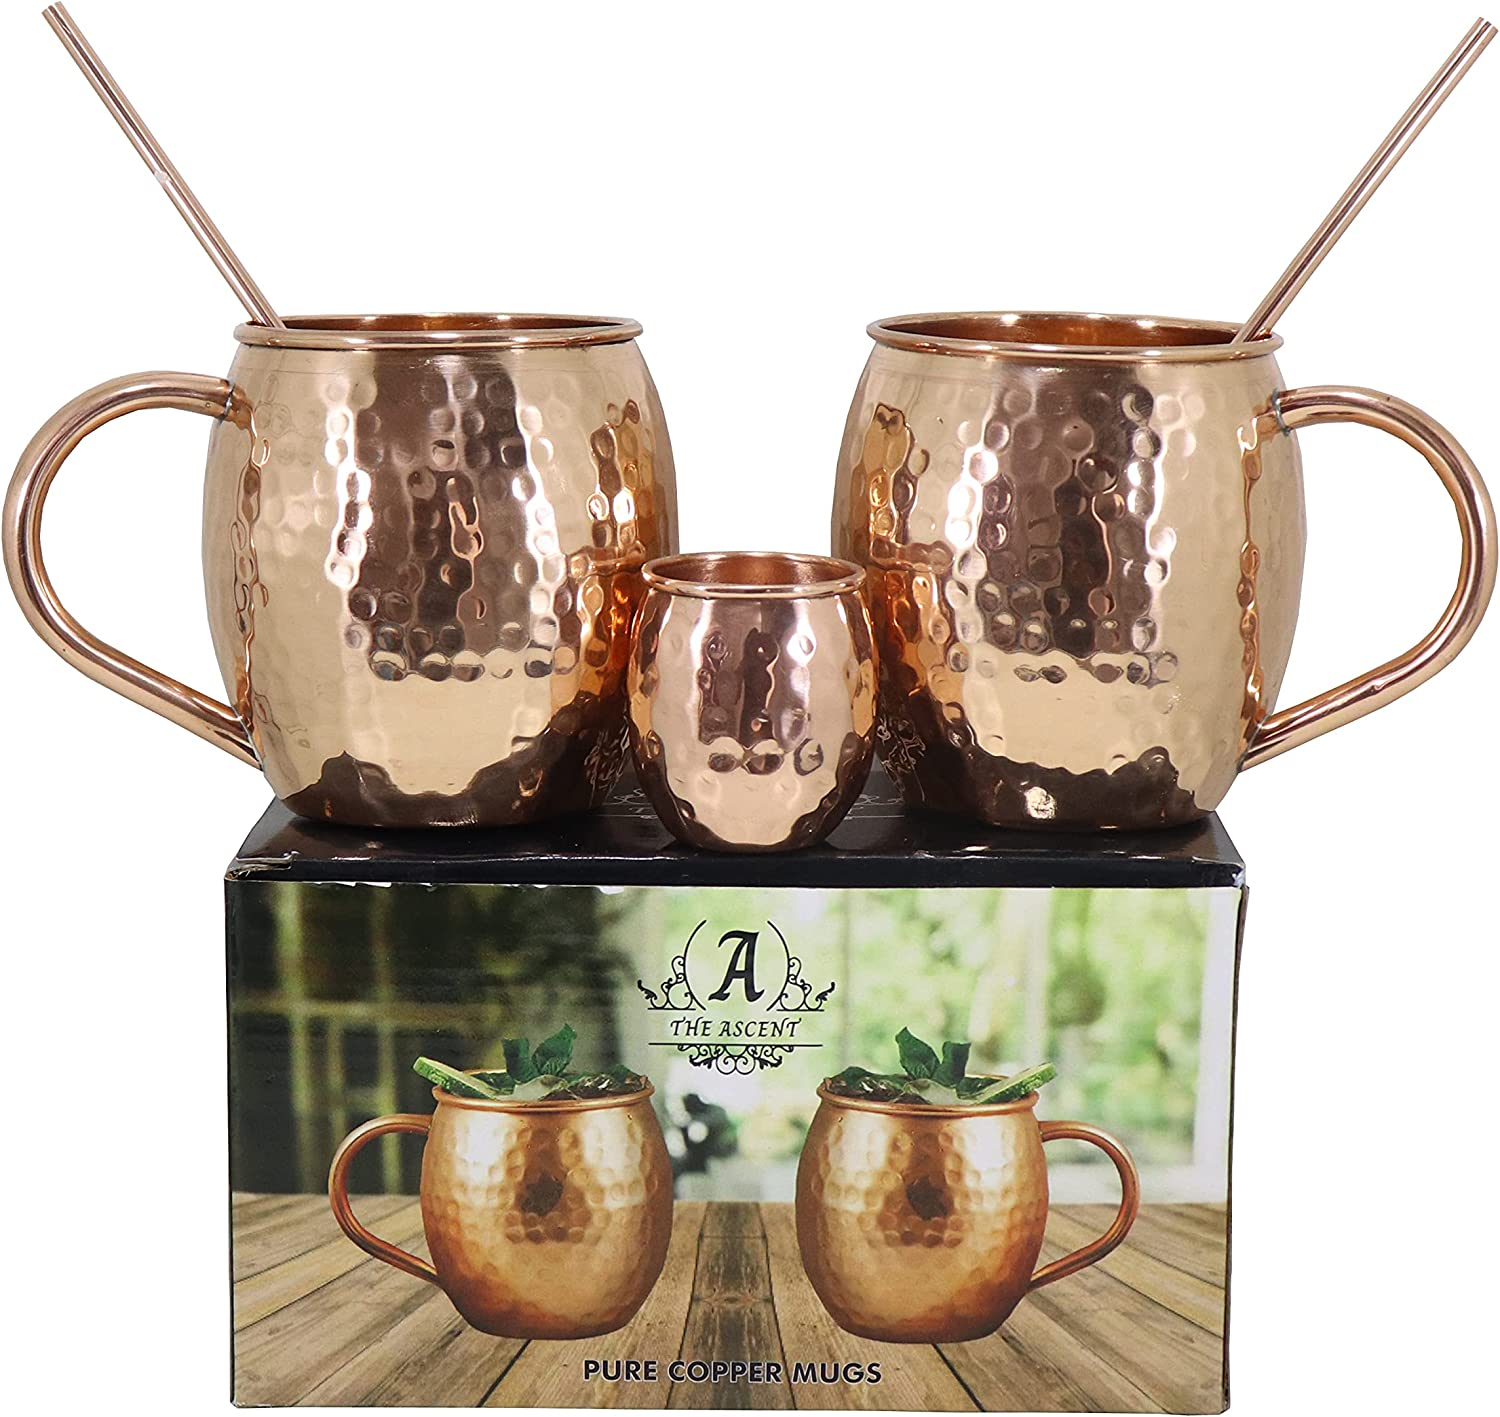 The Ascent Limited time cheap Recommendation sale Moscow Mule Copper Mug Coppe Gift Set of 2